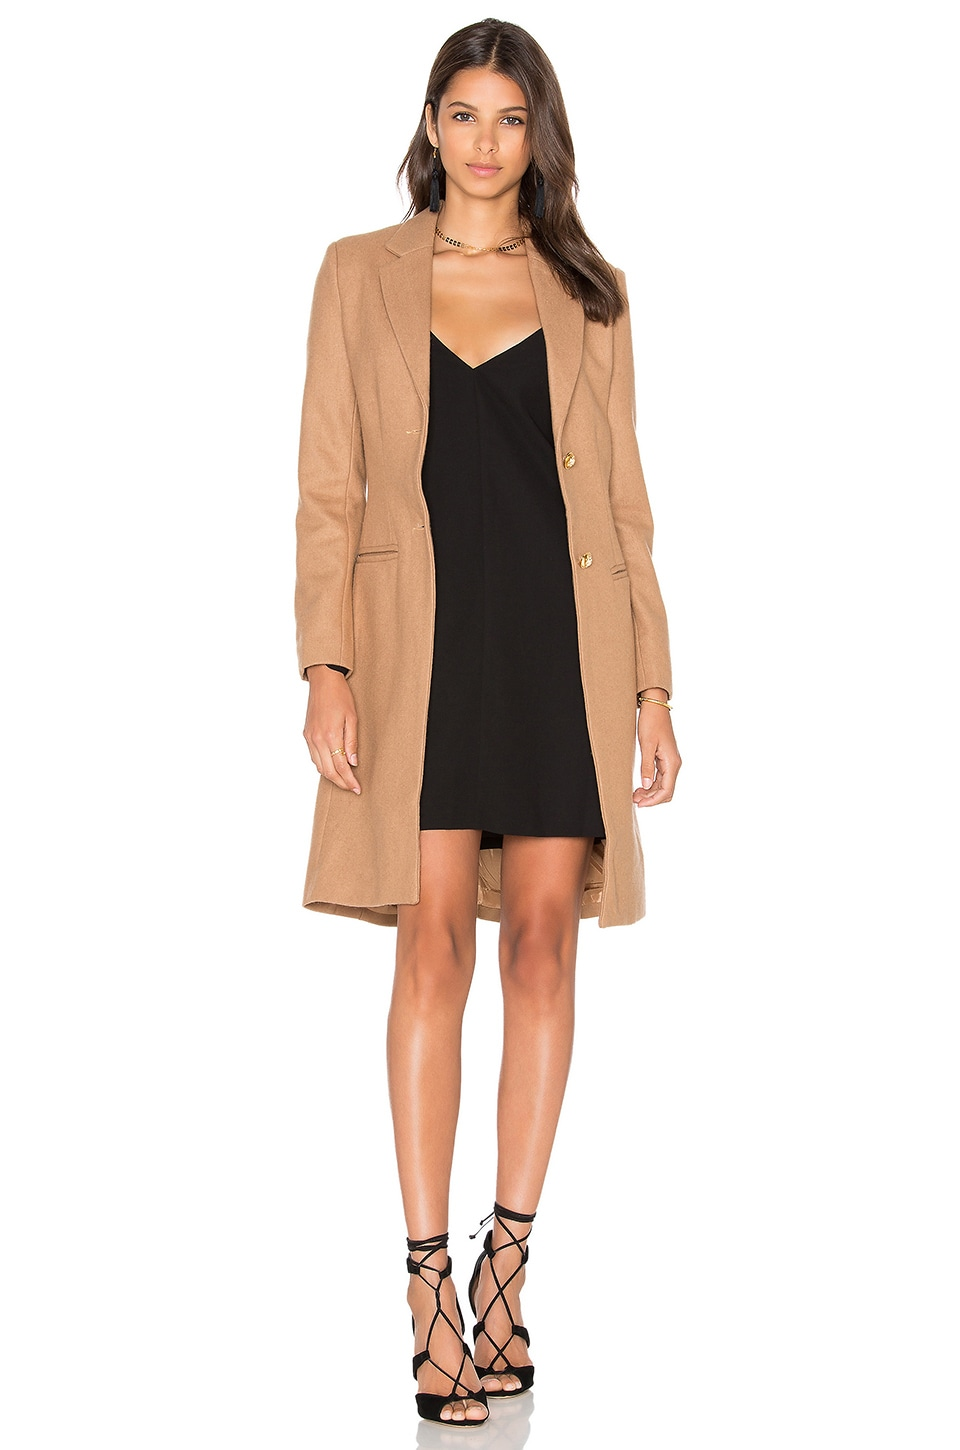 LIONESS Donatella Short Winter Coat in Camel